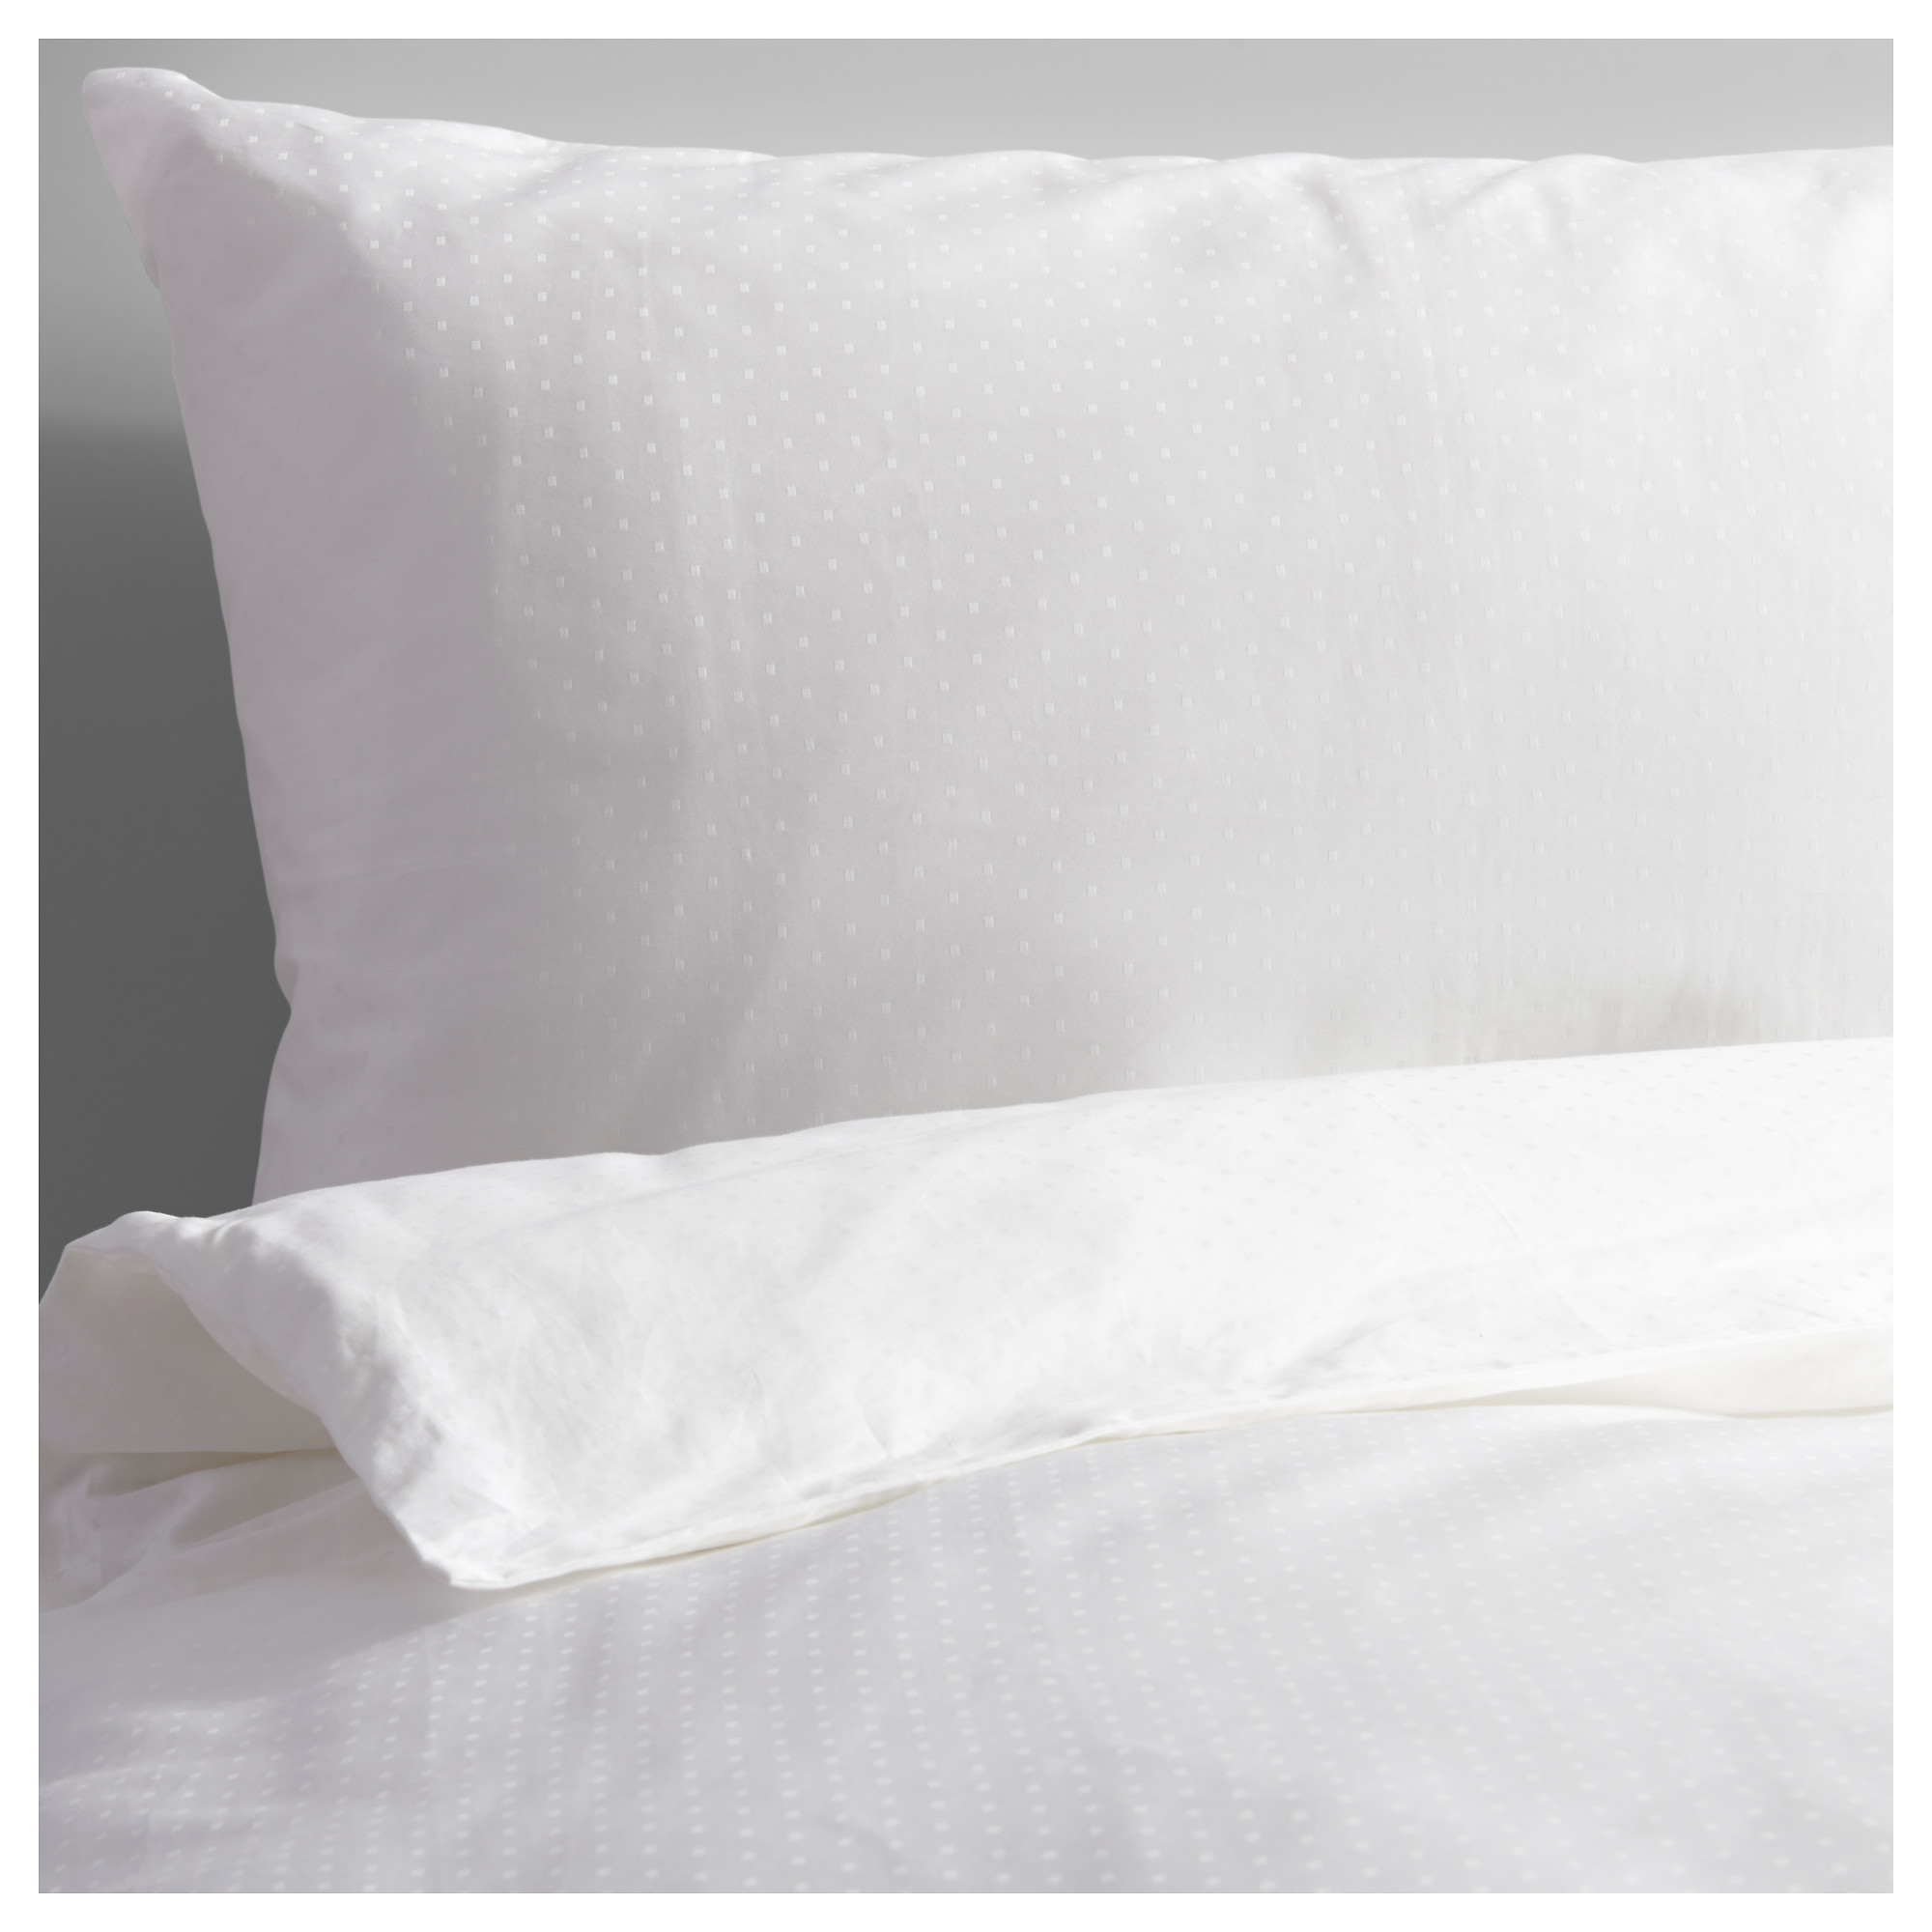 White Duvet Cover | Cotton Duvet Covers | Duvet Covers White Queen